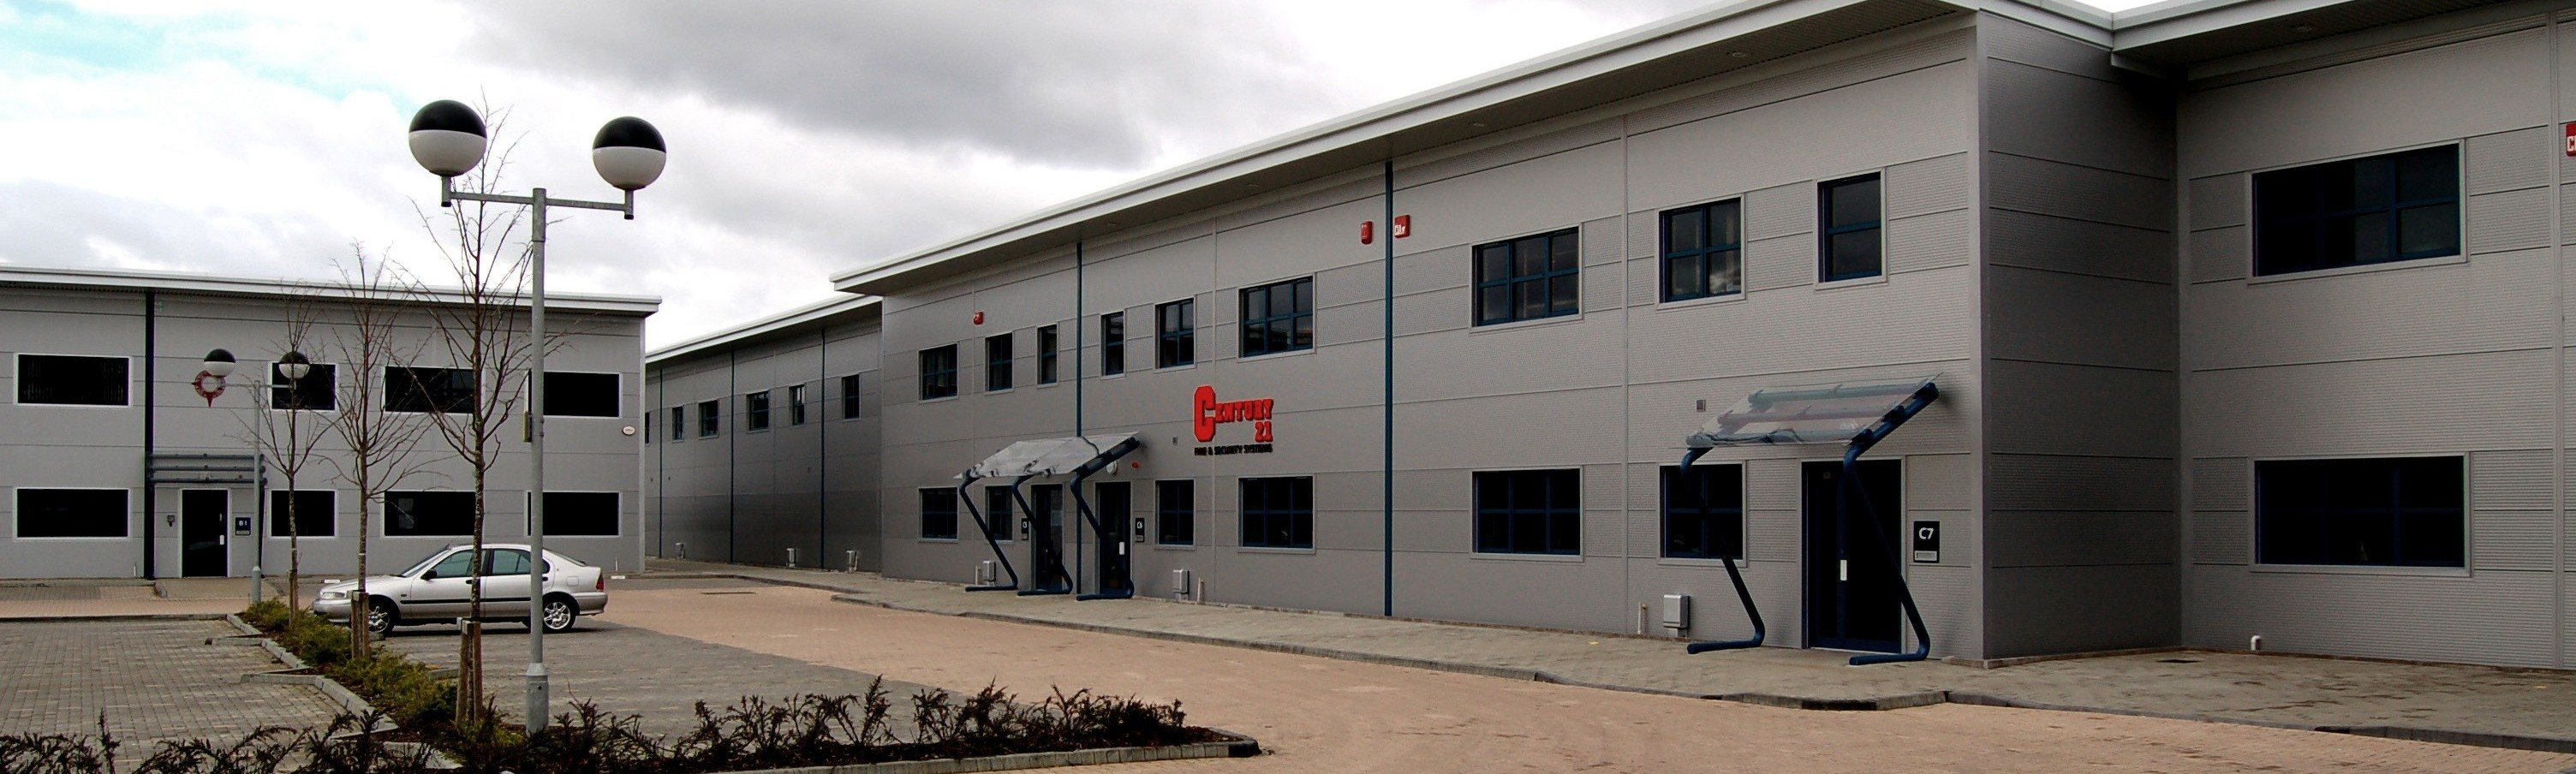 Endeavour Business Park image